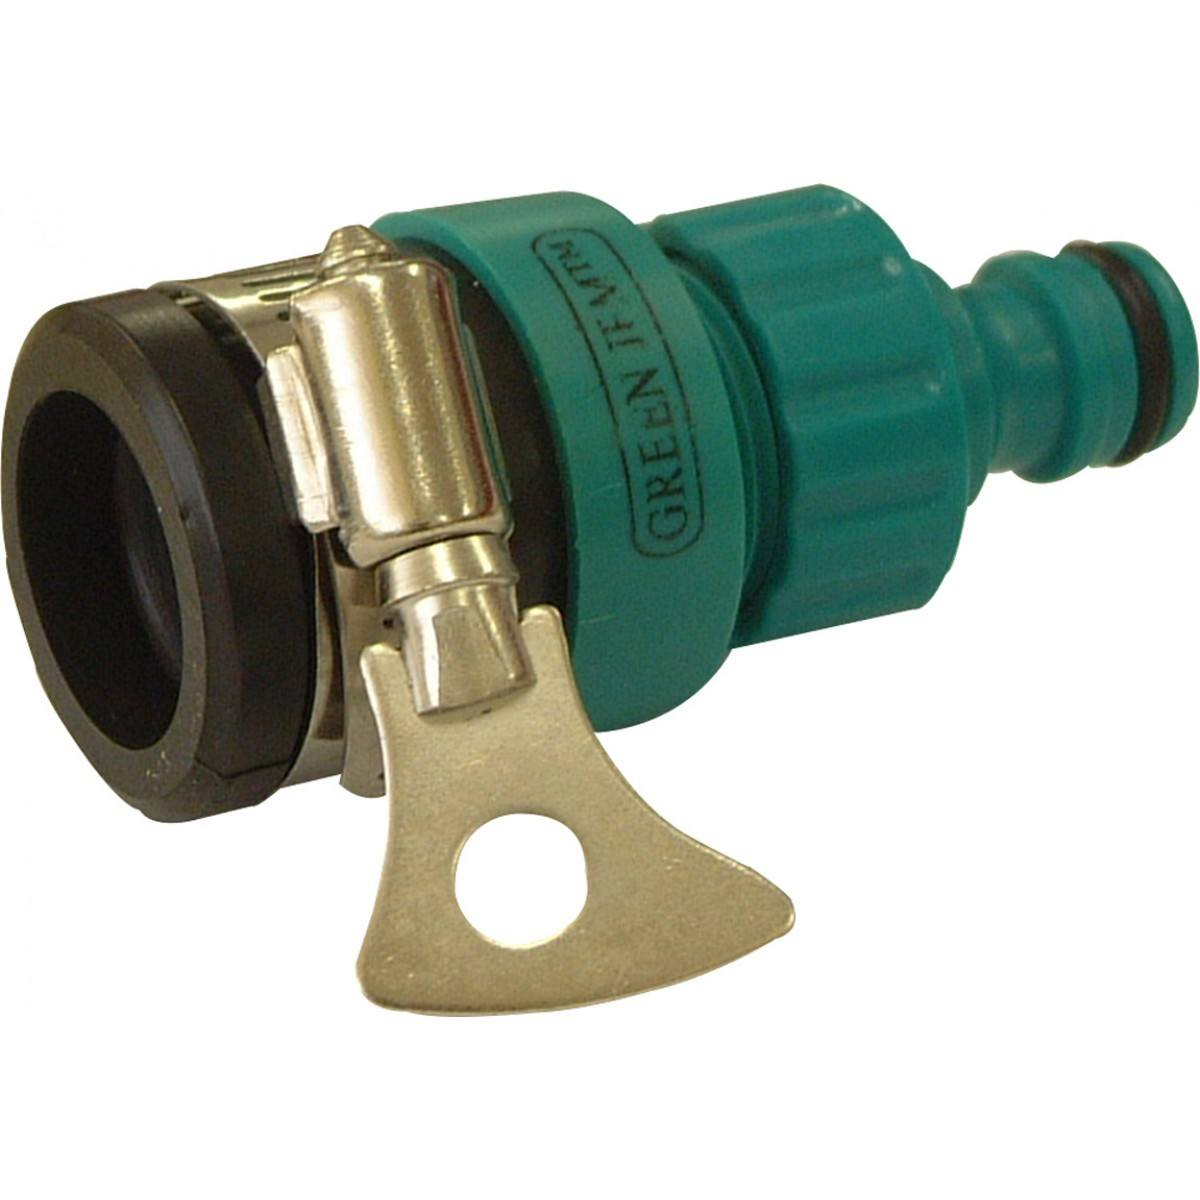 colonial tap company is a manufacturer of tap and fittings Windsor bathroom company (2  prearranged for wall or countertop tap fittings countertop  contact the manufacturer to get an estimate or a price.